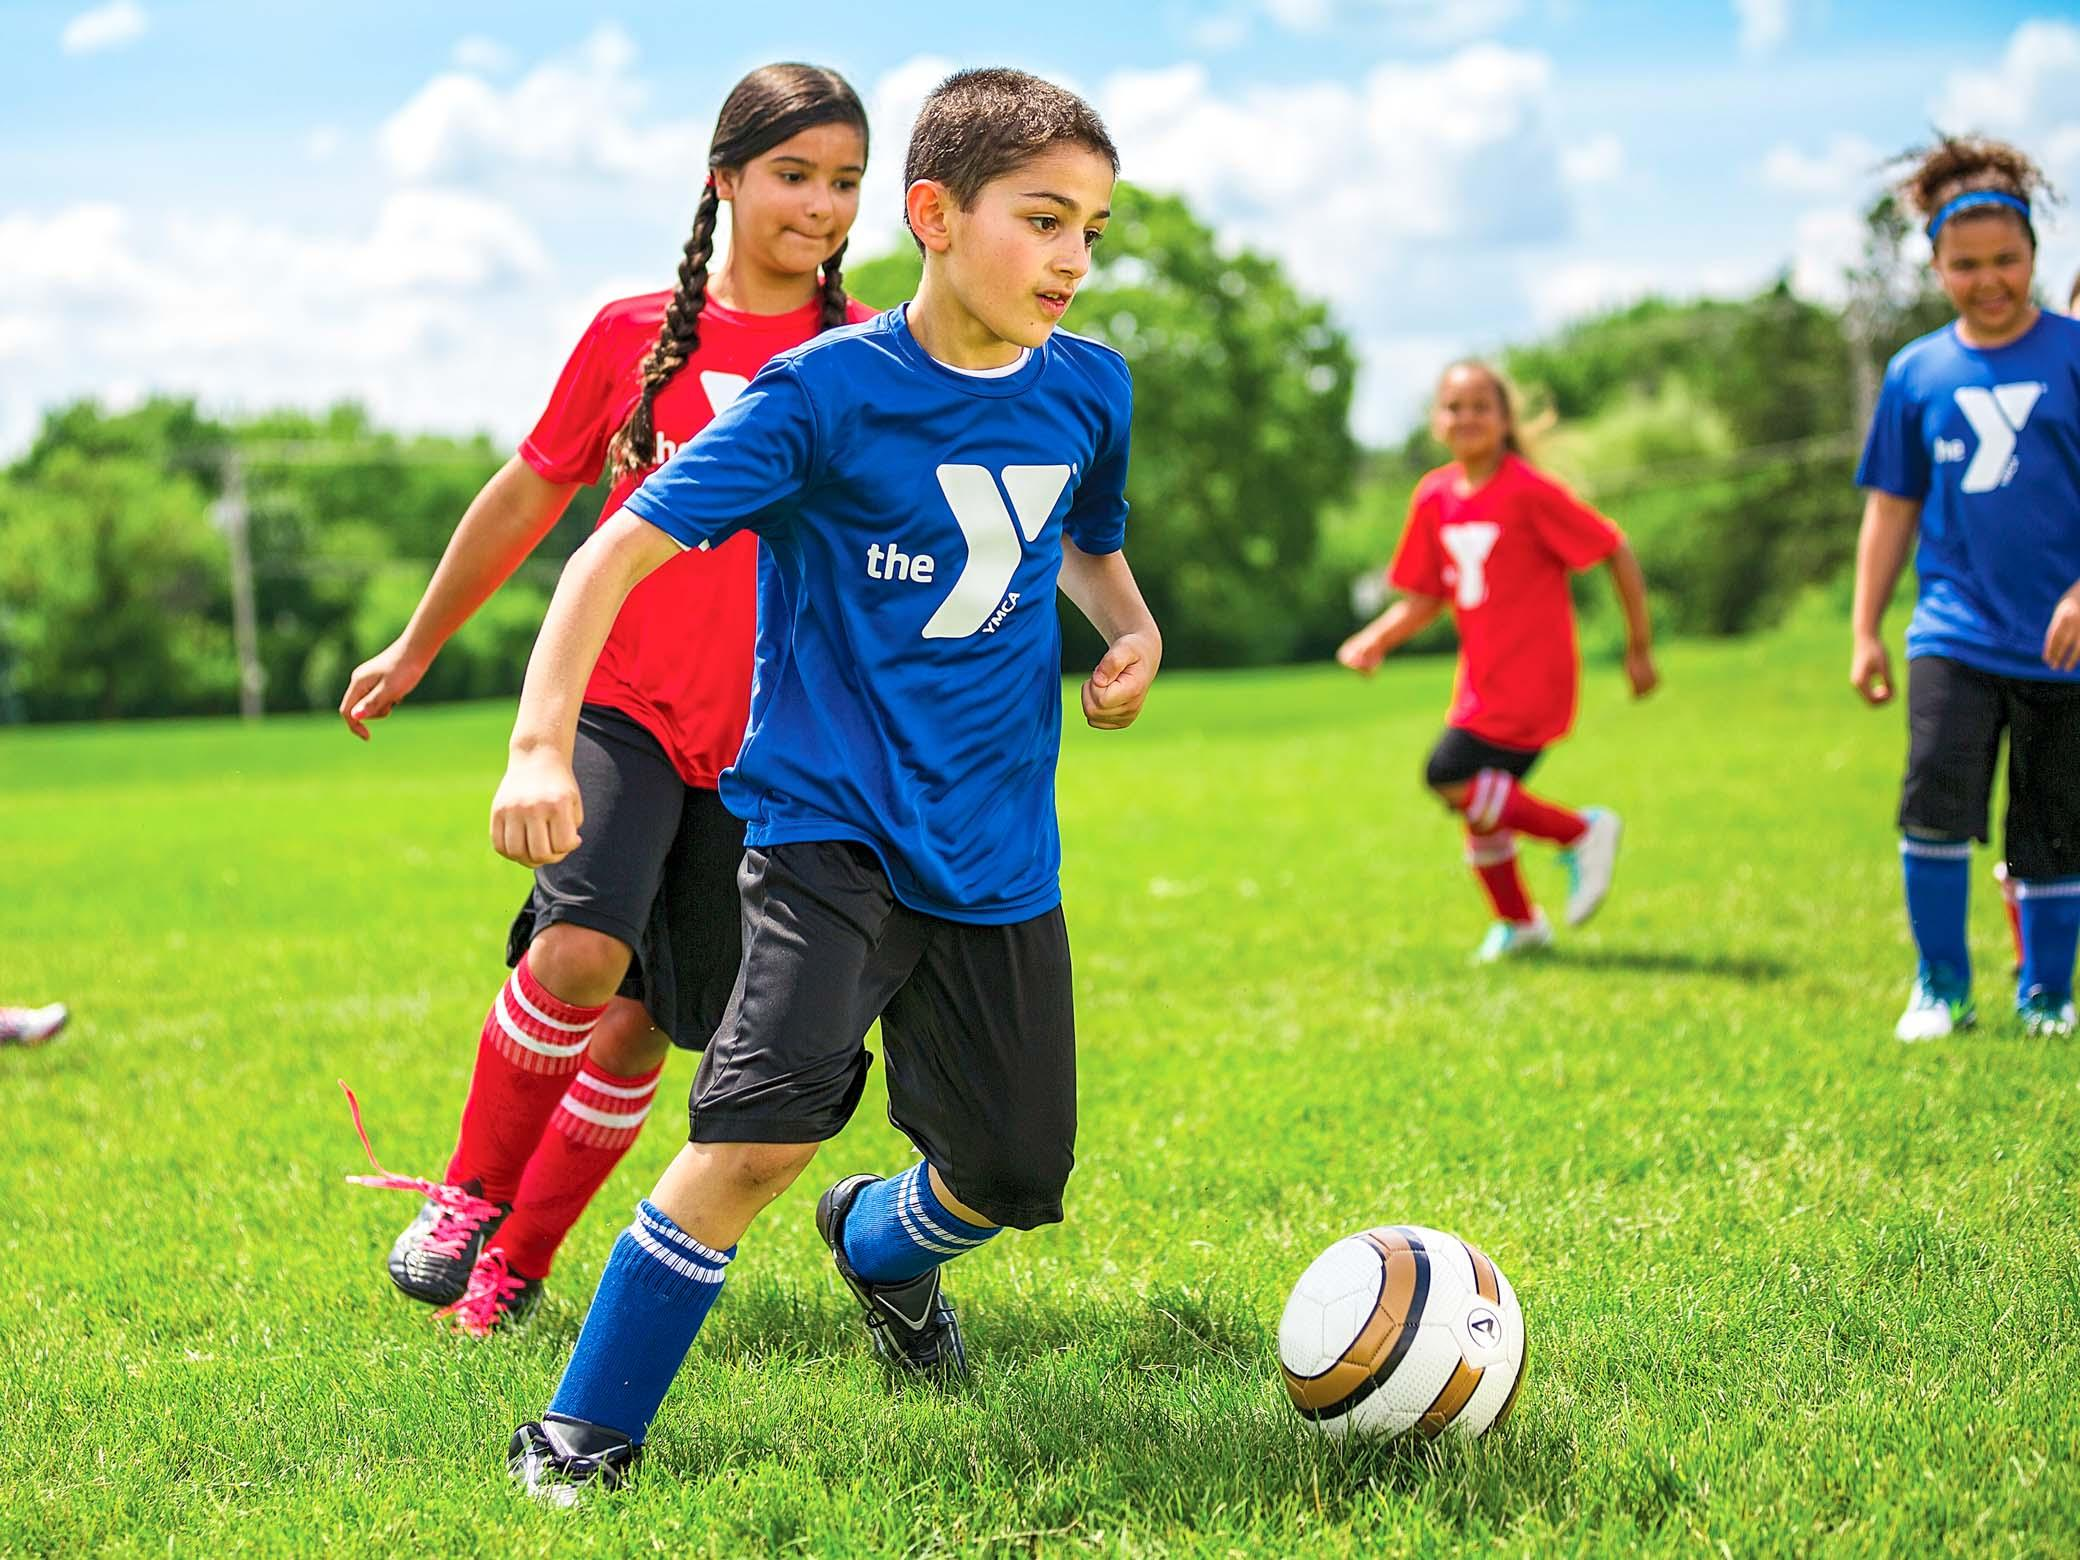 Children play soccer game wearing YMCA shirts